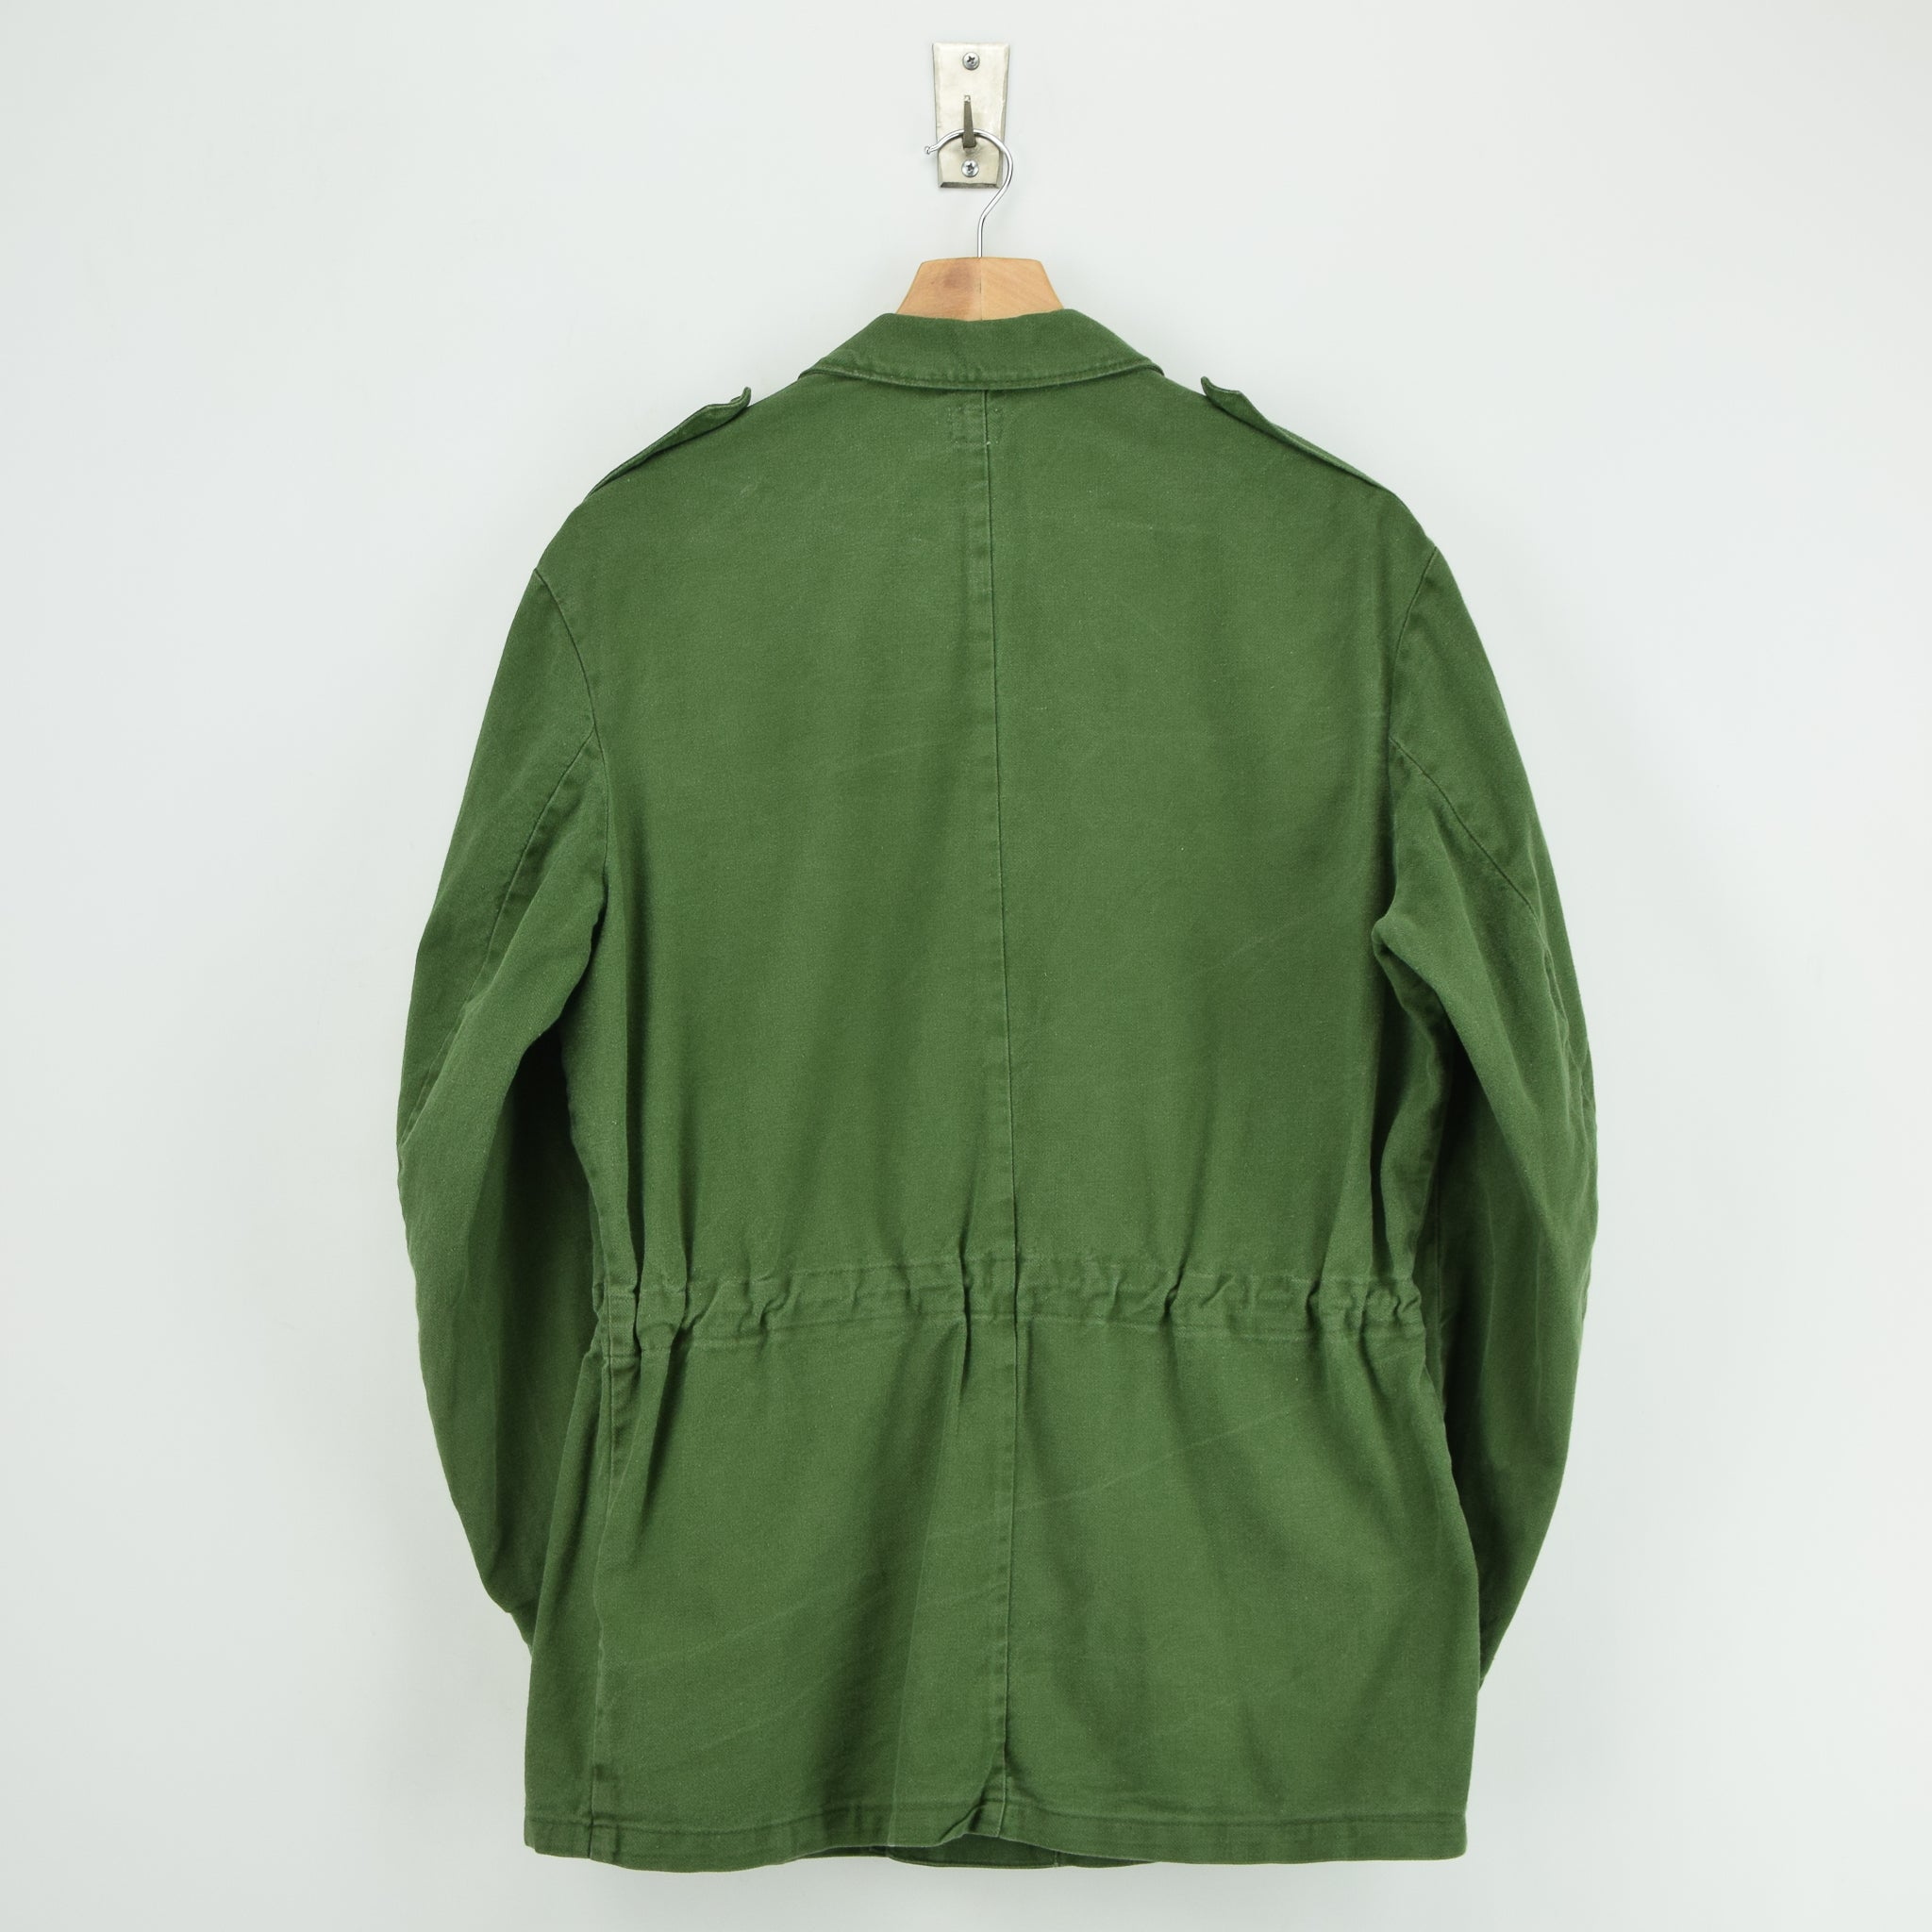 Vintage Swedish Worker Style Distressed Green Military Field Shirt Jacket M back